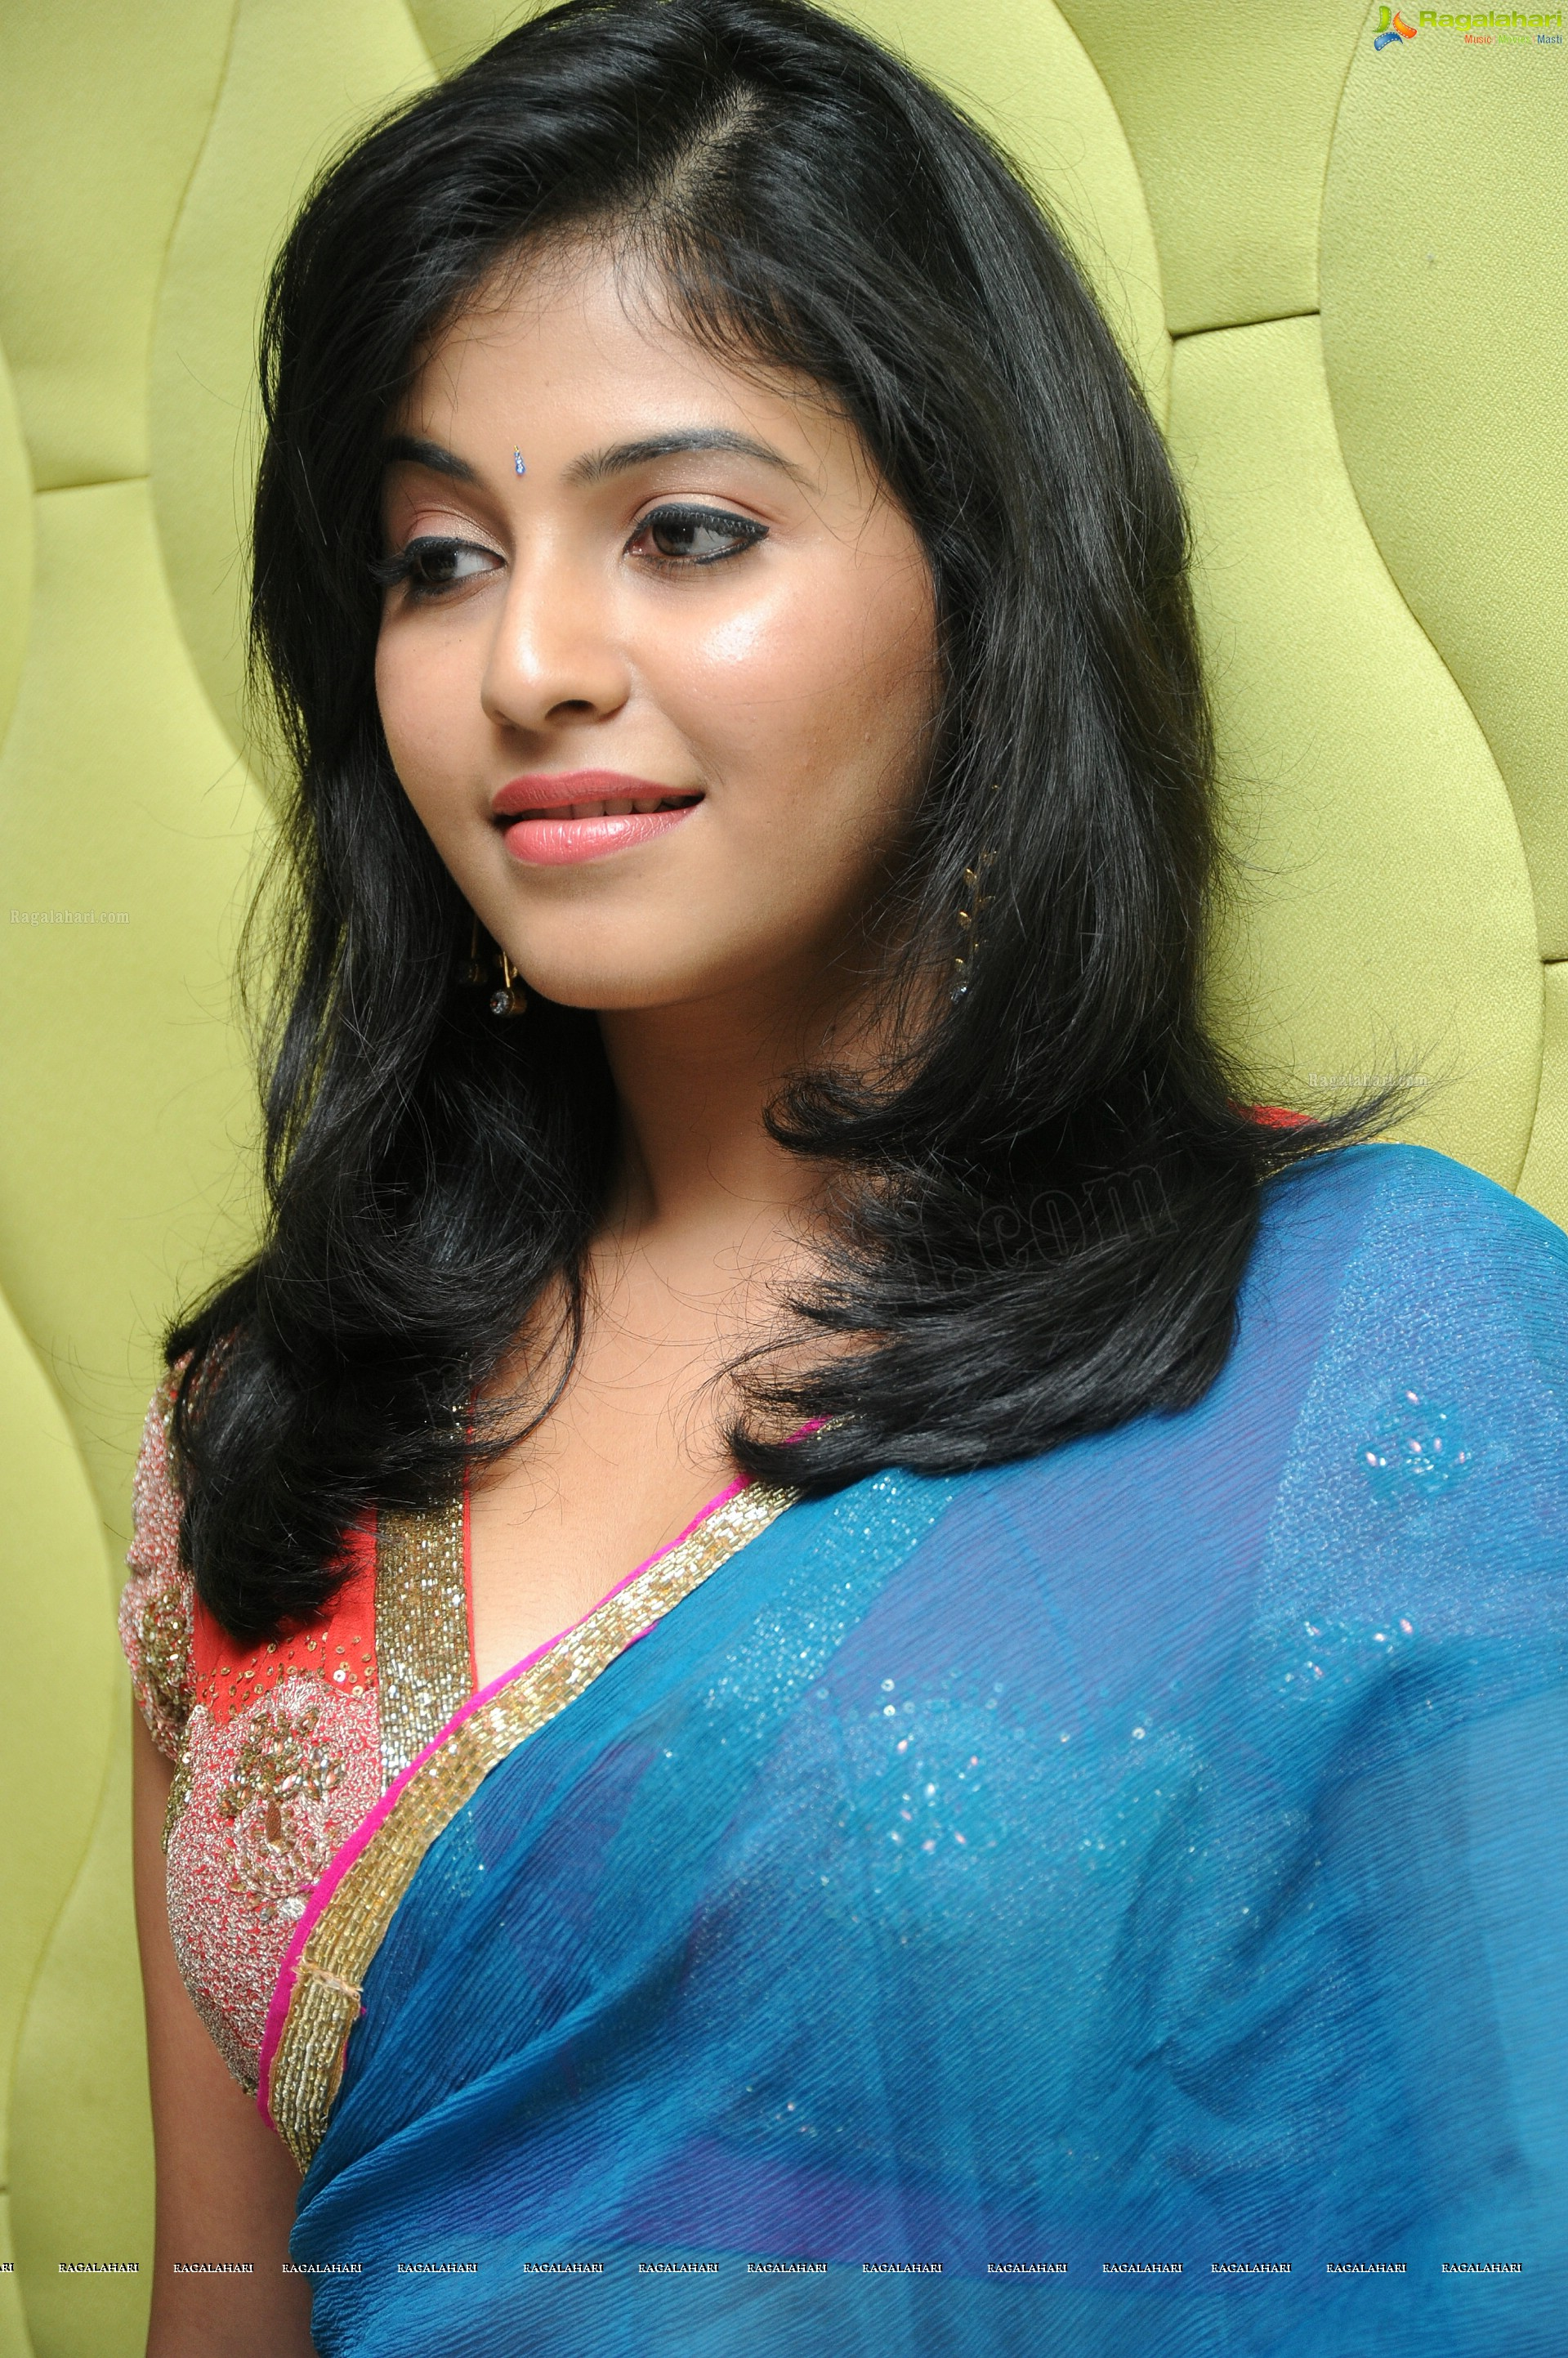 Anjali Tamil Actress Nude Fakes Images Femalecelebrity